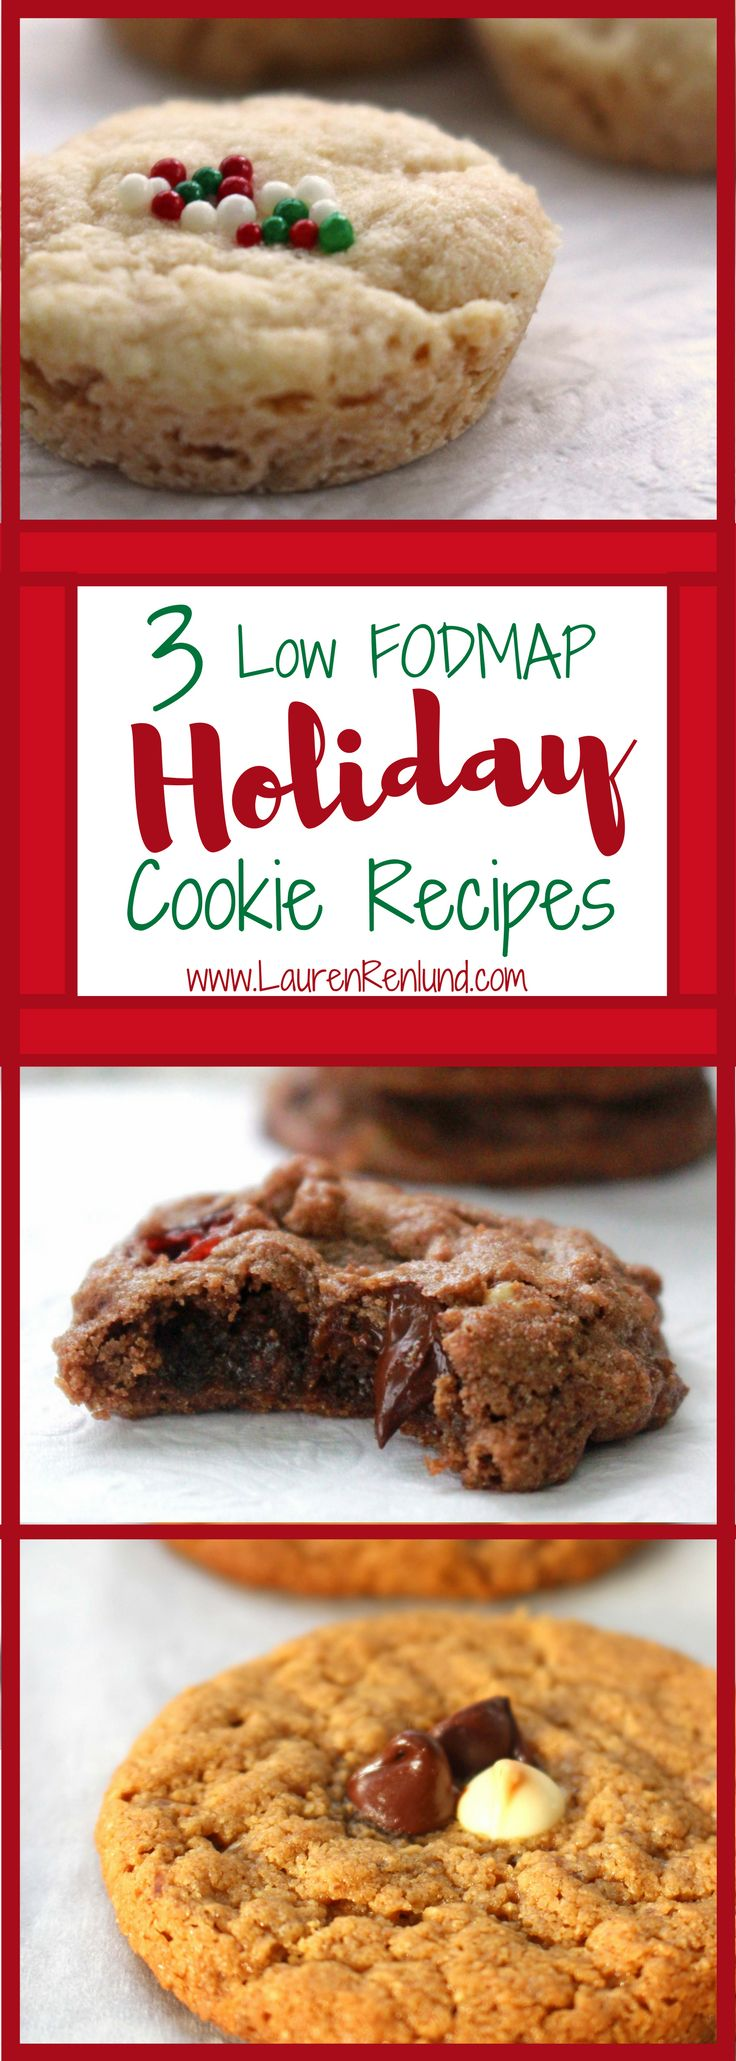 Low FODMAP Holiday Cookies